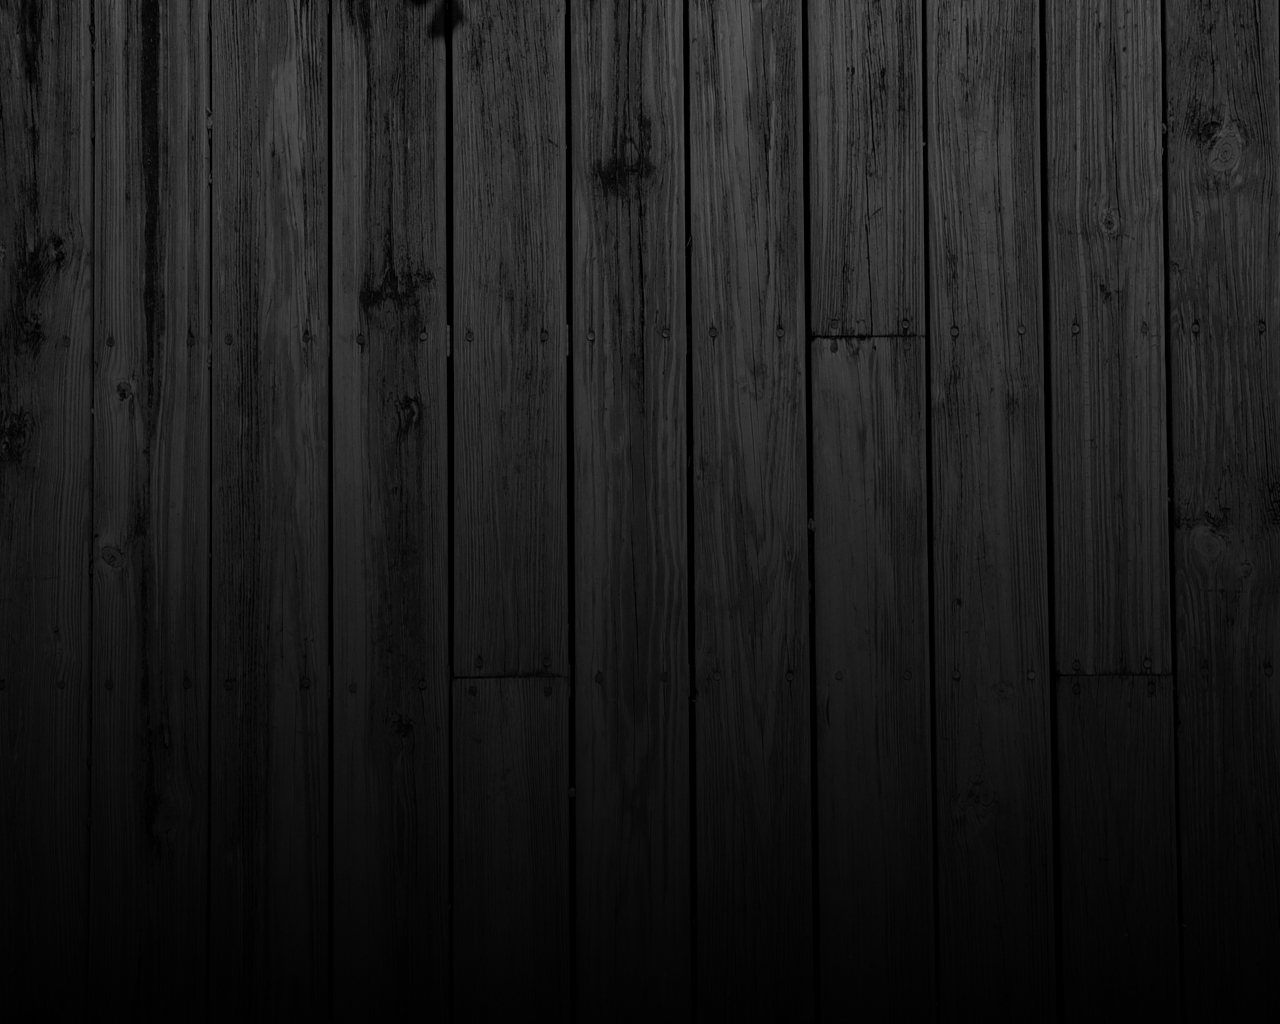 Wood Desktop Backgrounds Wallpapersafari